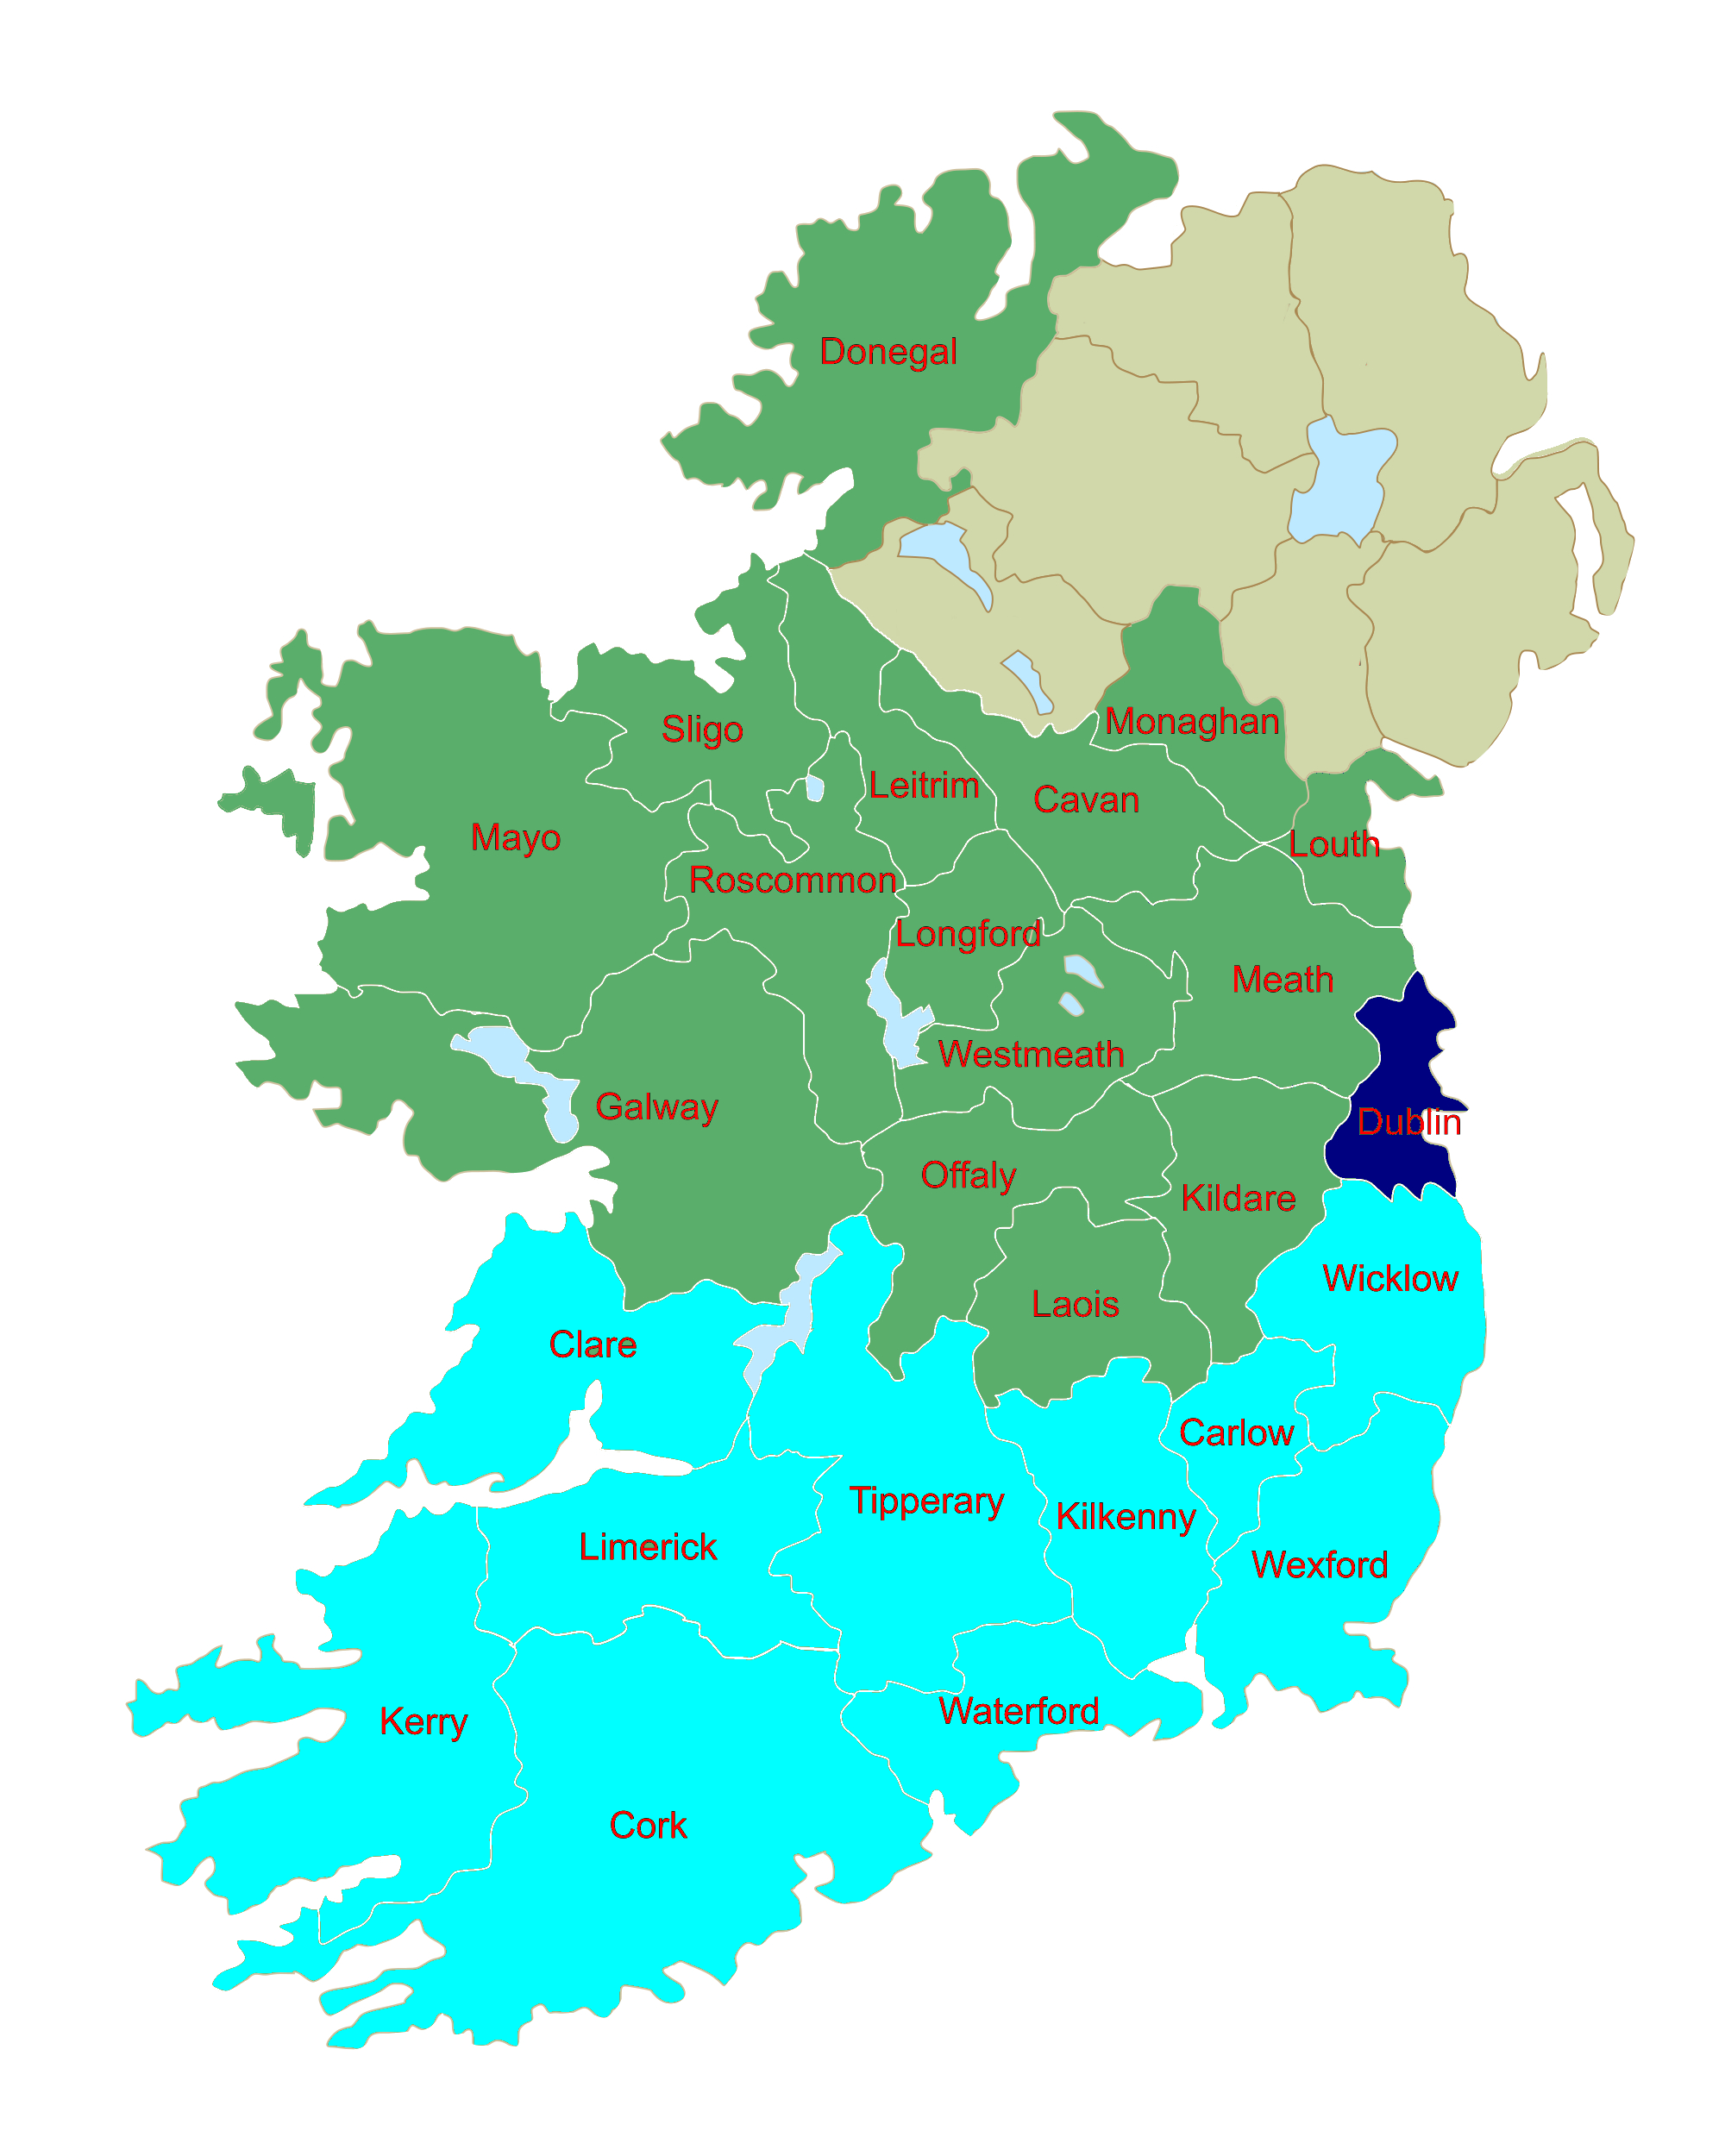 Map Of Ireland Cavan.Dublin A Three Seater In Ireland S New Look European Constituency Map